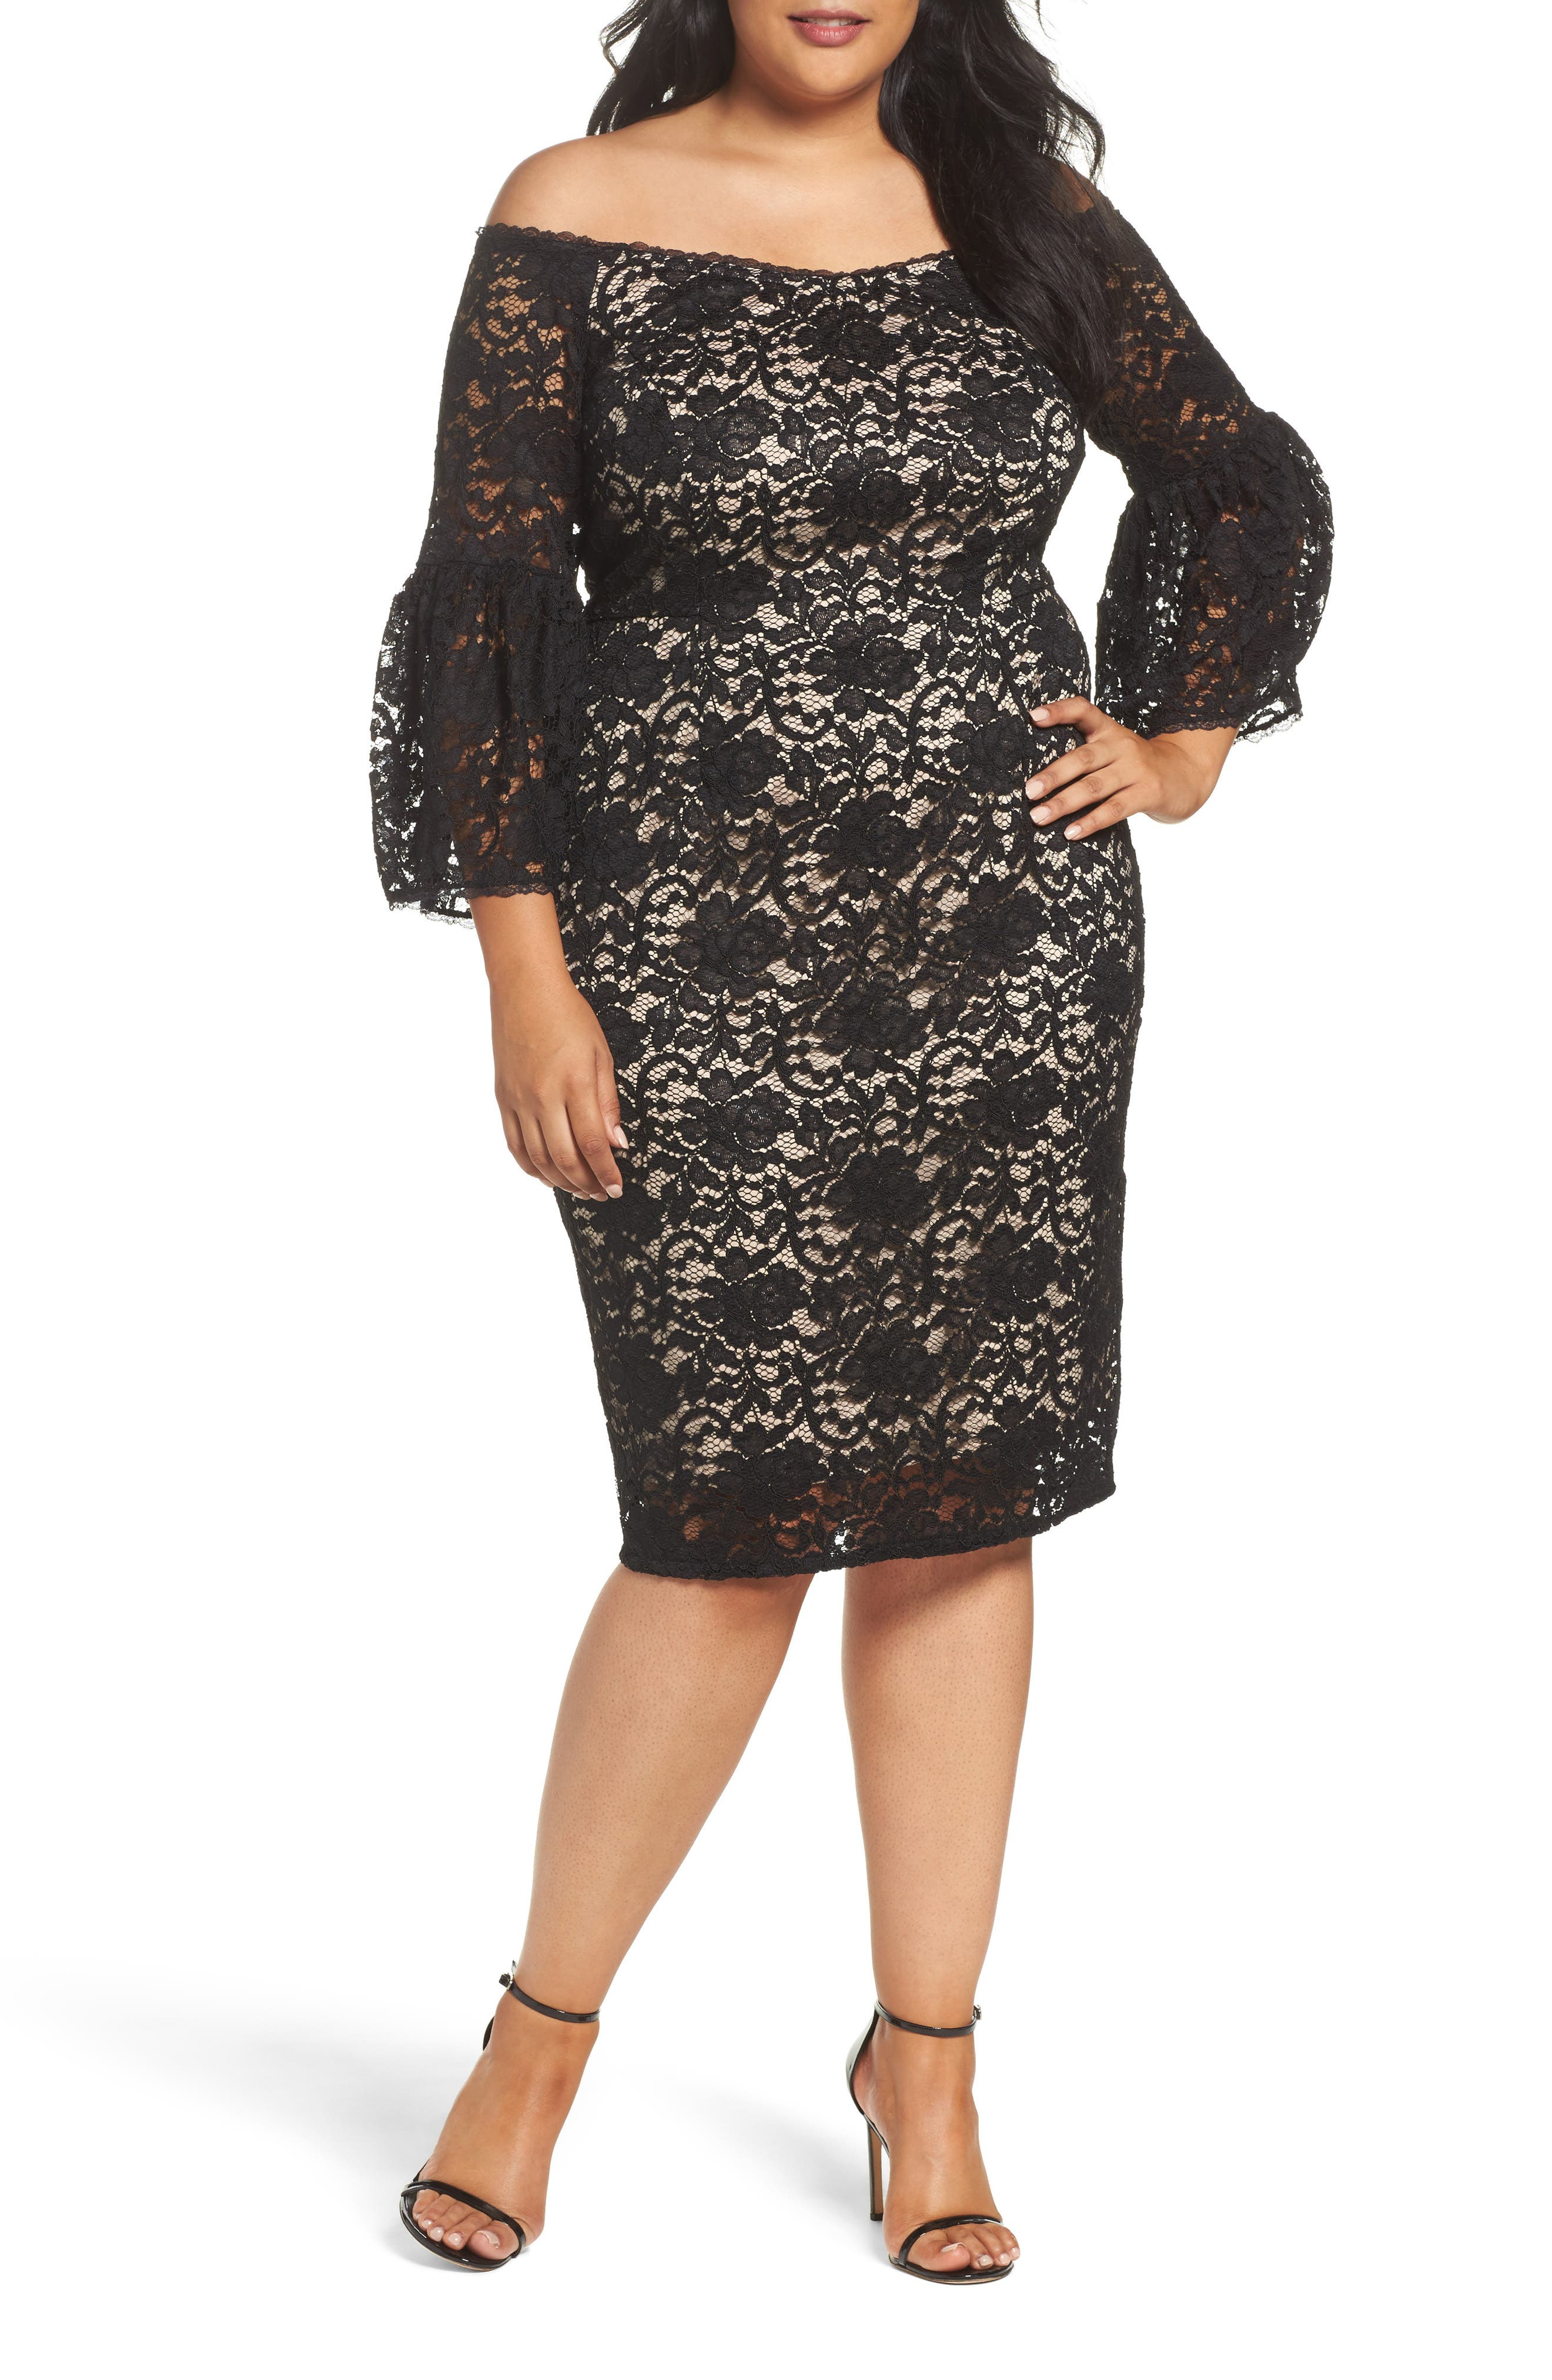 Adrianna Papell Juliet Off the Shoulder Lace Dress (Plus Size)